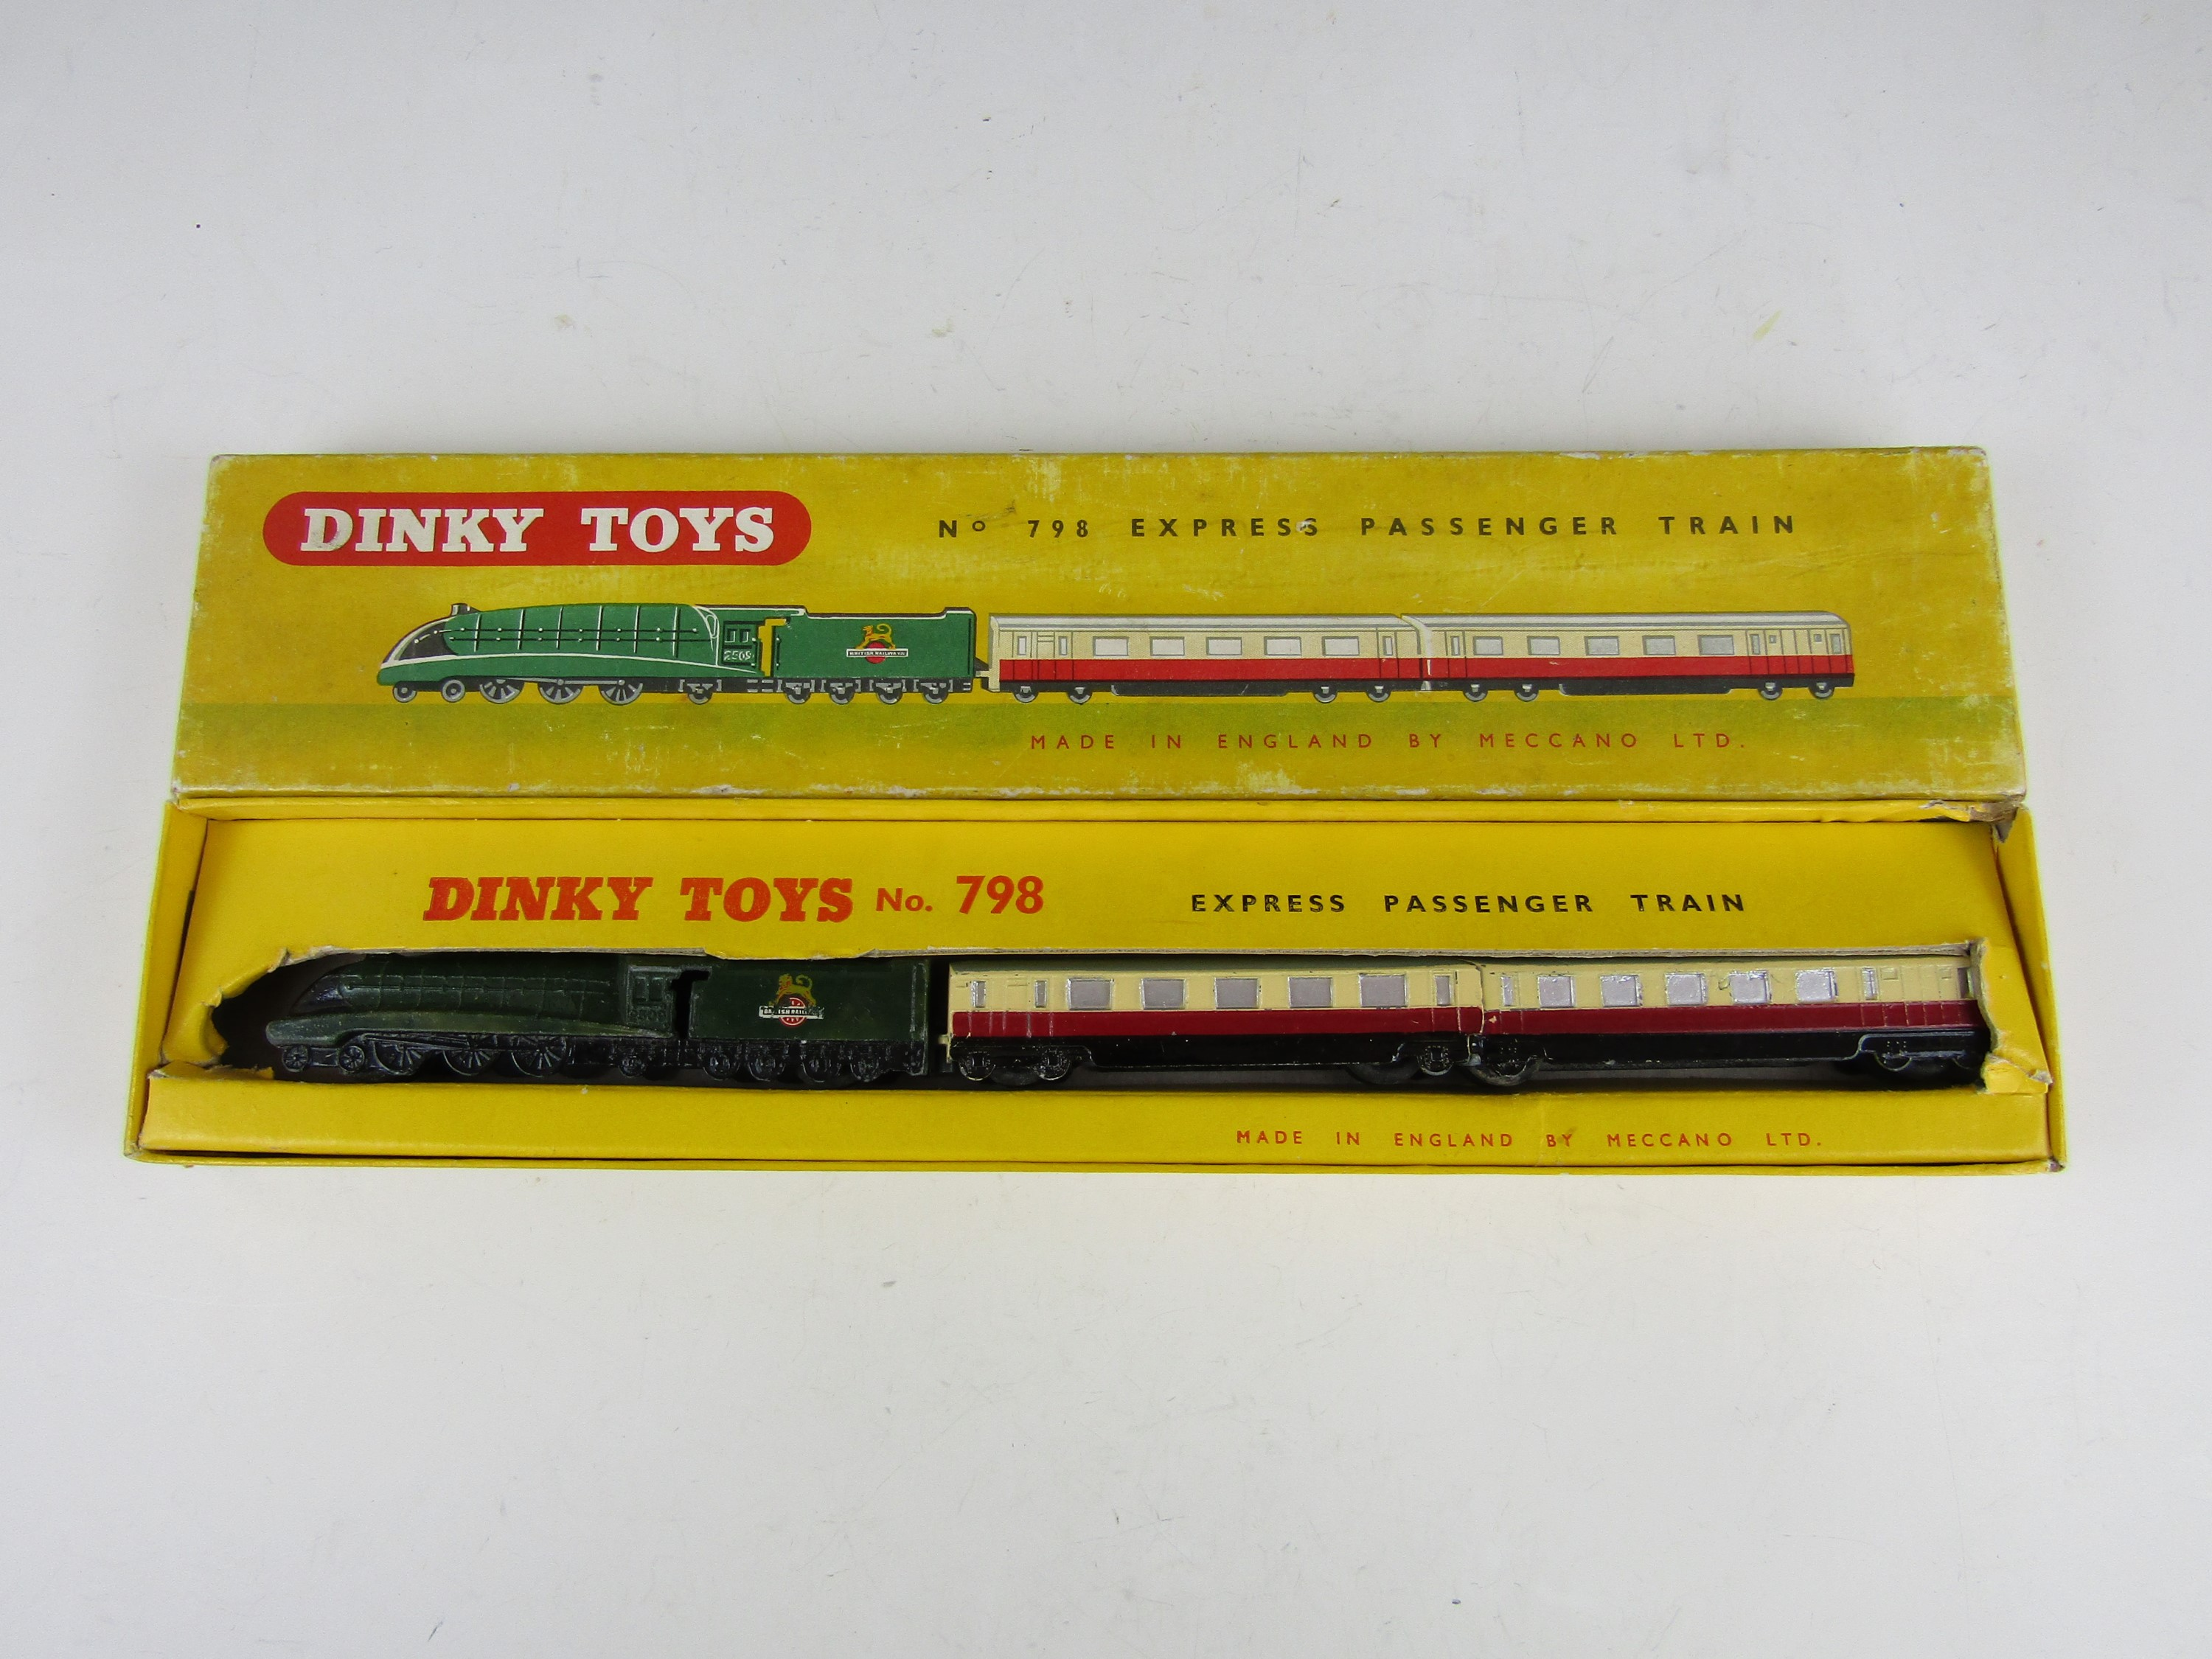 Lot 33 - A Dinky Toys No 798 Express Passenger Train, in original carton